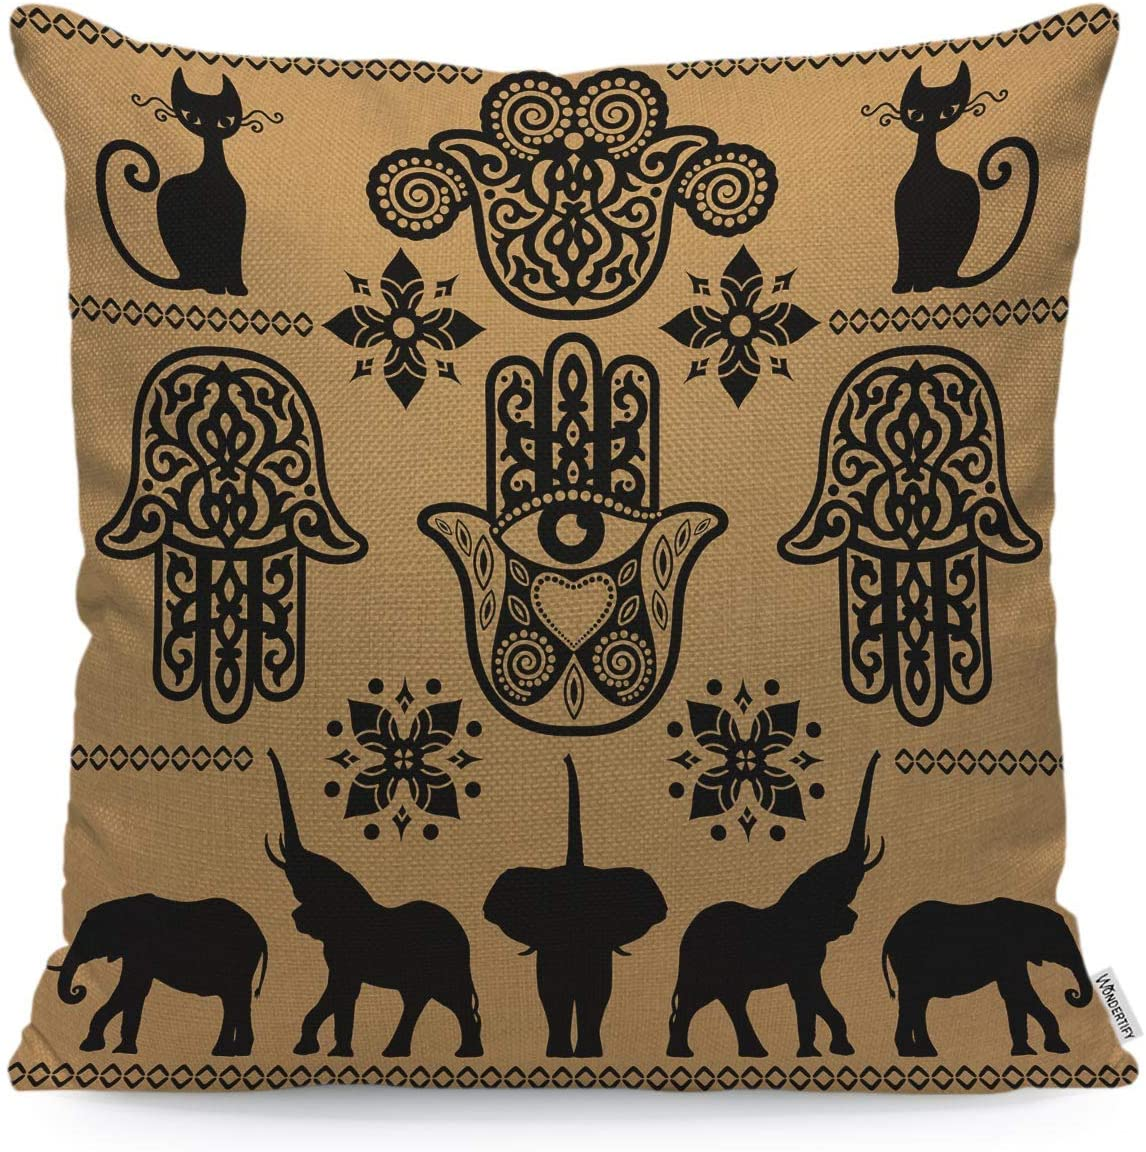 WONDERTIFY Throw Pillow Case Cover Indian Ethnic Cat Elephant Hand Pattern Black Beige - Soft Linen Pillow Case for Decorative Bedroom/Livingroom/Sofa/Farm House-Cushion Covers Couch Pillow 18x18Inch